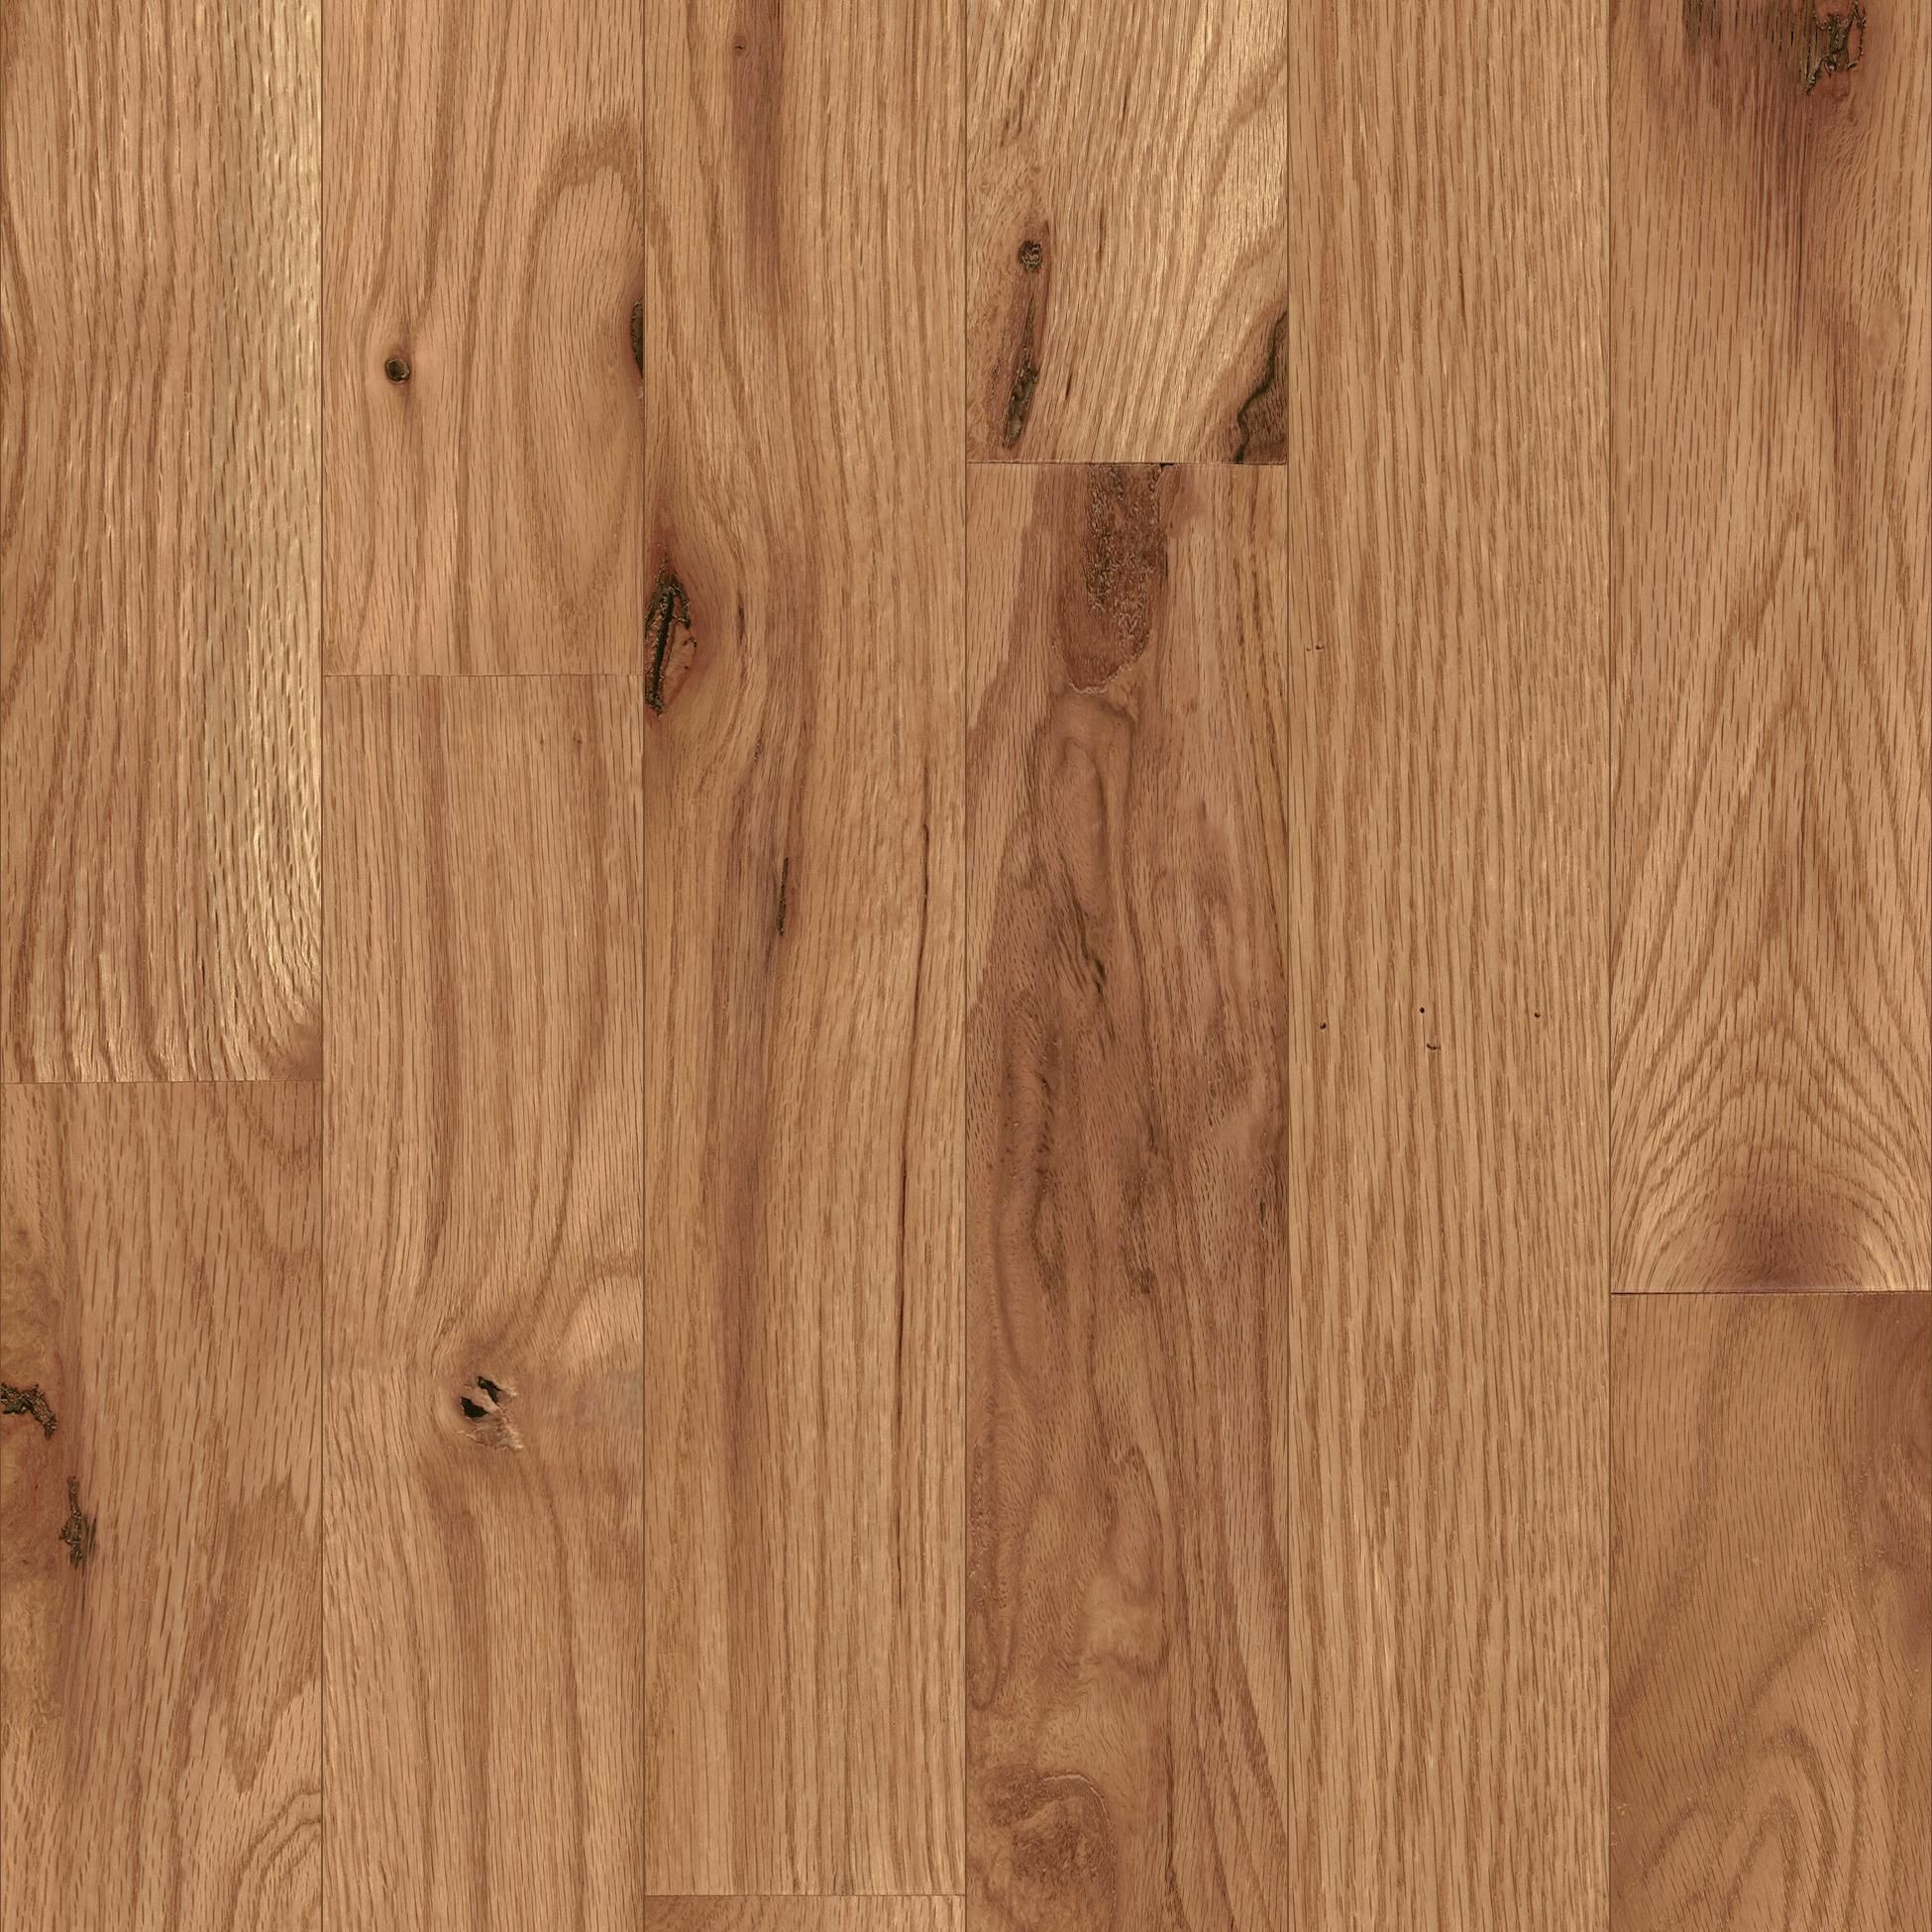 shaw red oak hardwood flooring of mohawk eastridge value collection 3 1 4 wide oak natural solid regarding mohawk eastridge value collection 3 1 4 wide oak natural solid hardwood flooring